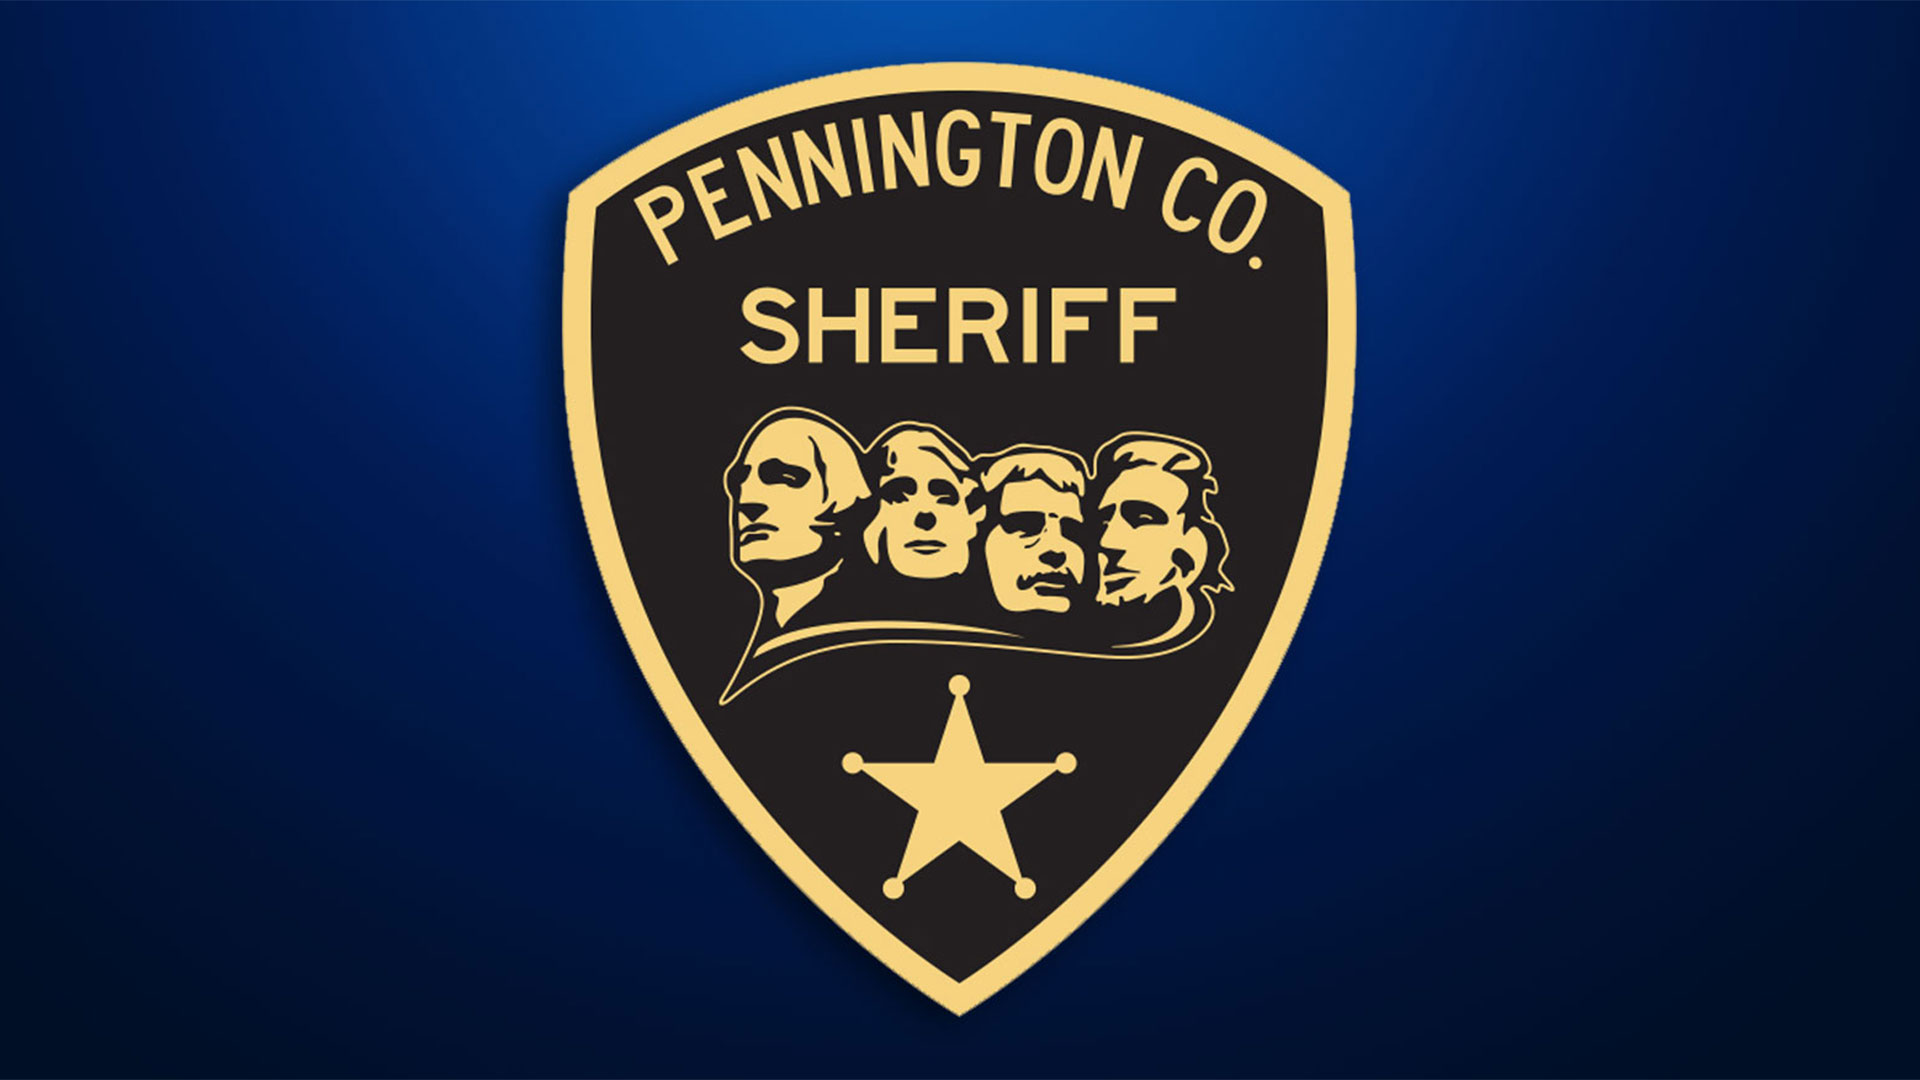 KELO Pennington County Sheriff